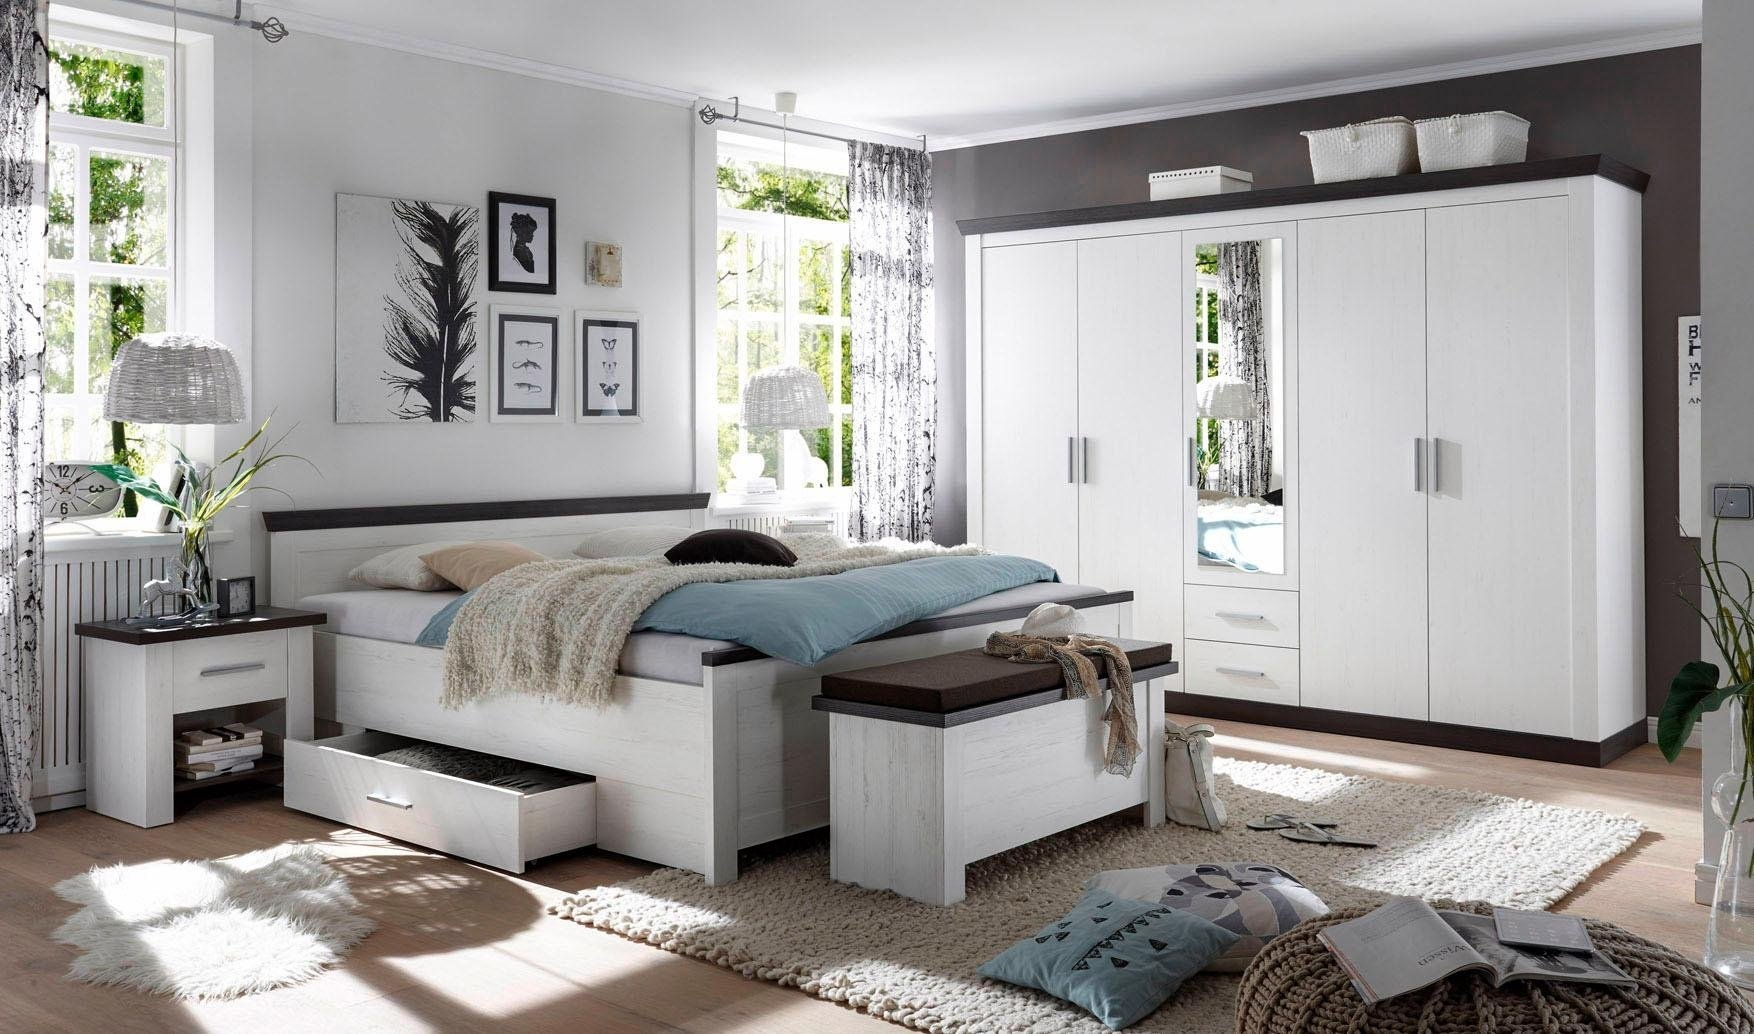 home affaire 4 delige slaapkamerserie 39 siena 39 online kopen otto. Black Bedroom Furniture Sets. Home Design Ideas